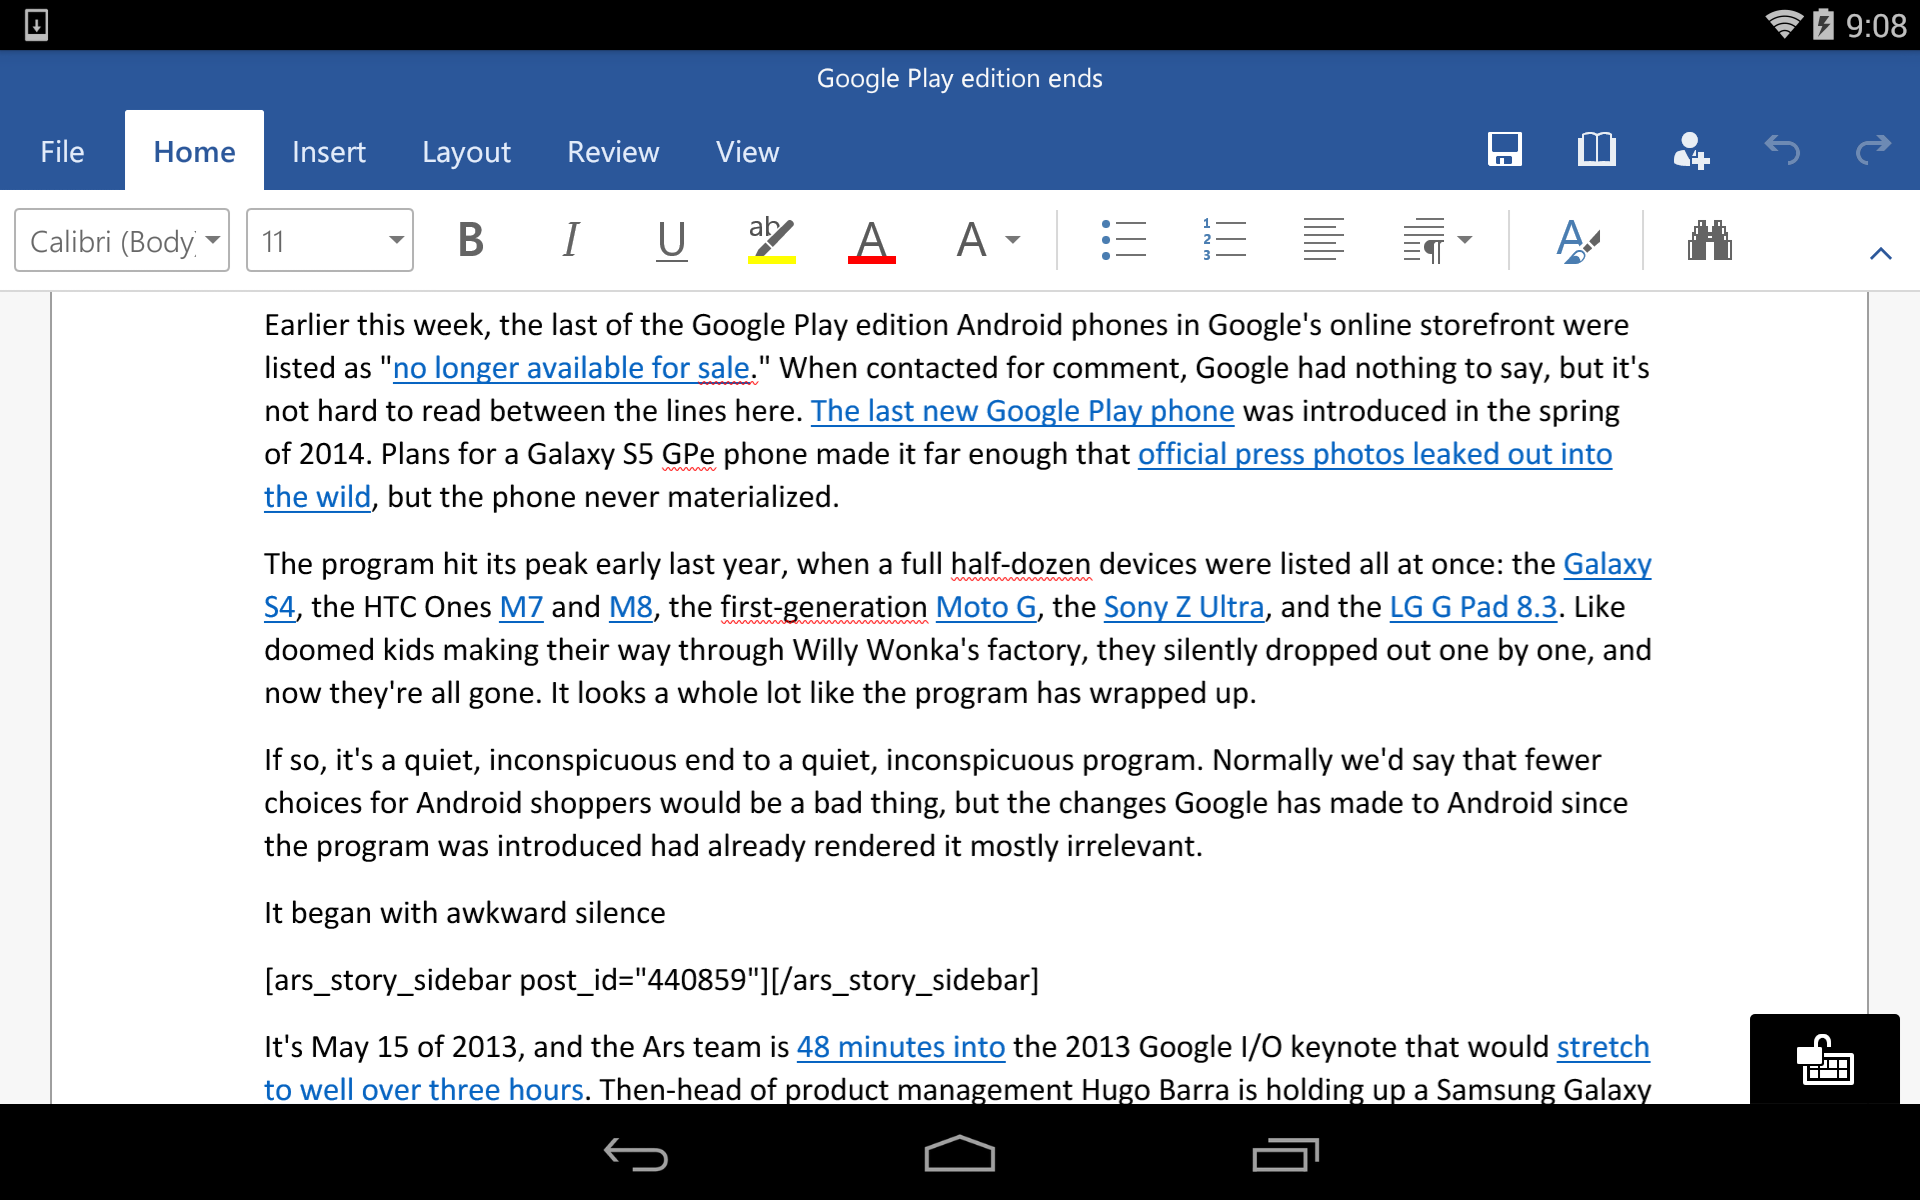 microsoft word apk android 4.4